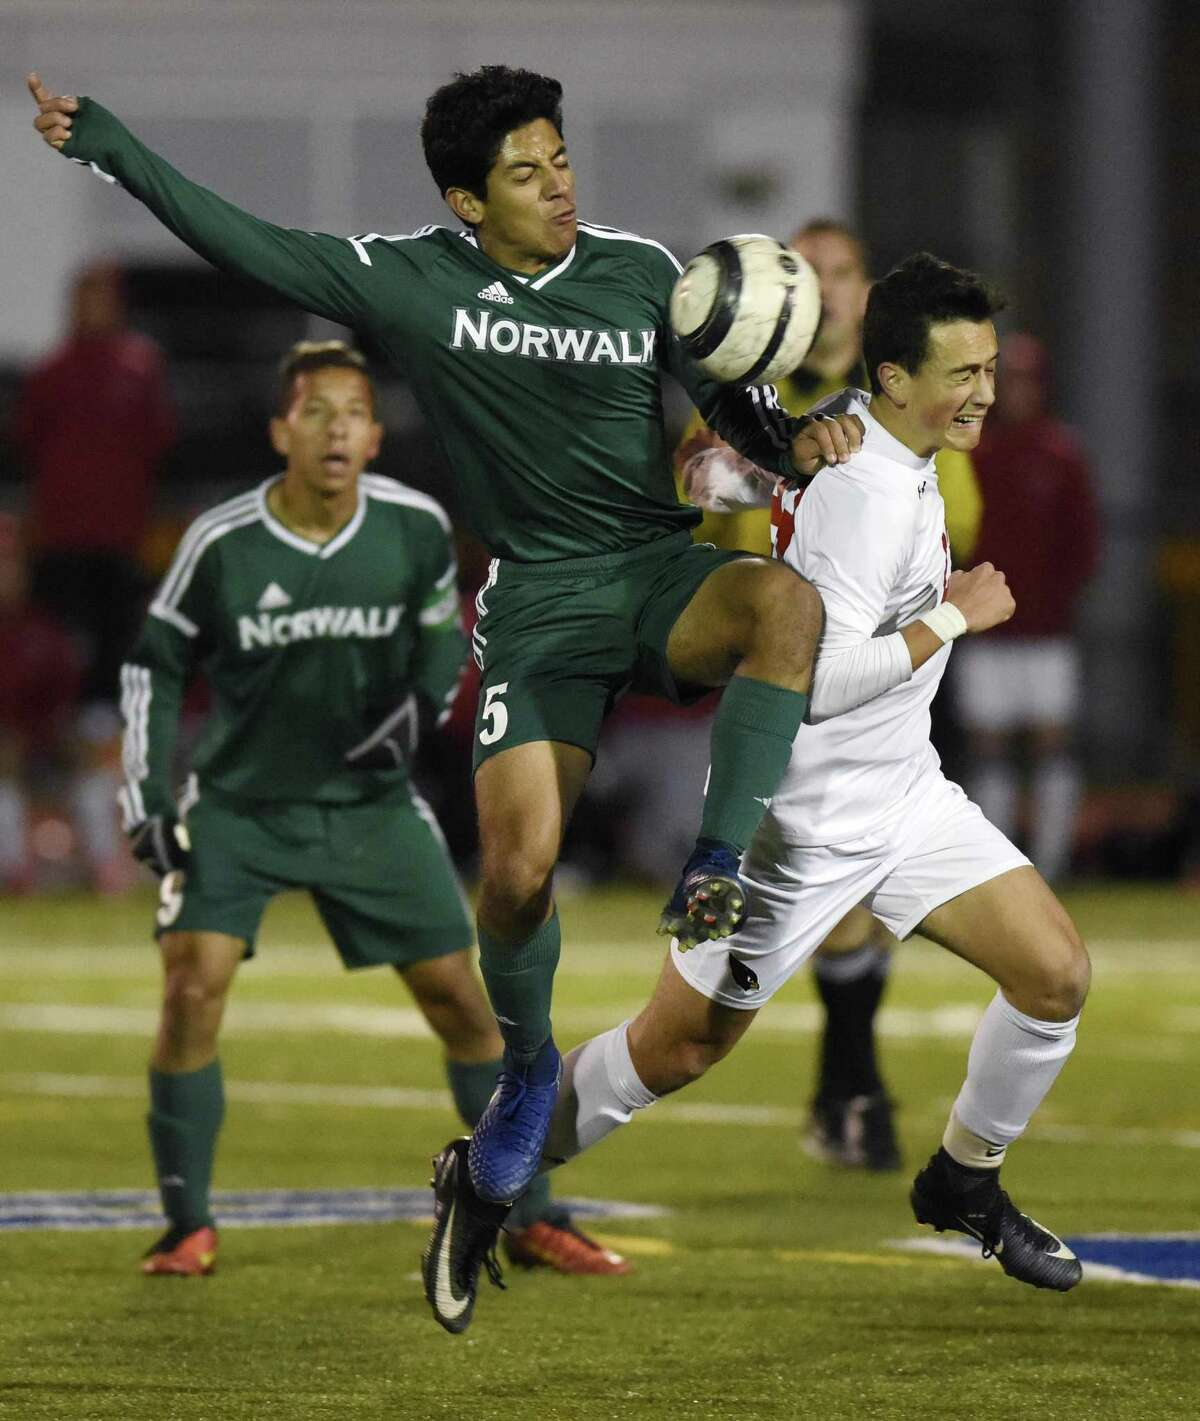 Norwalk's Fredy Rosales, left, and Greenwich's Martin Garcia jump for the ball in Monday's FCIAC semifinal at Fairfield Ludlowe High School on Monday.